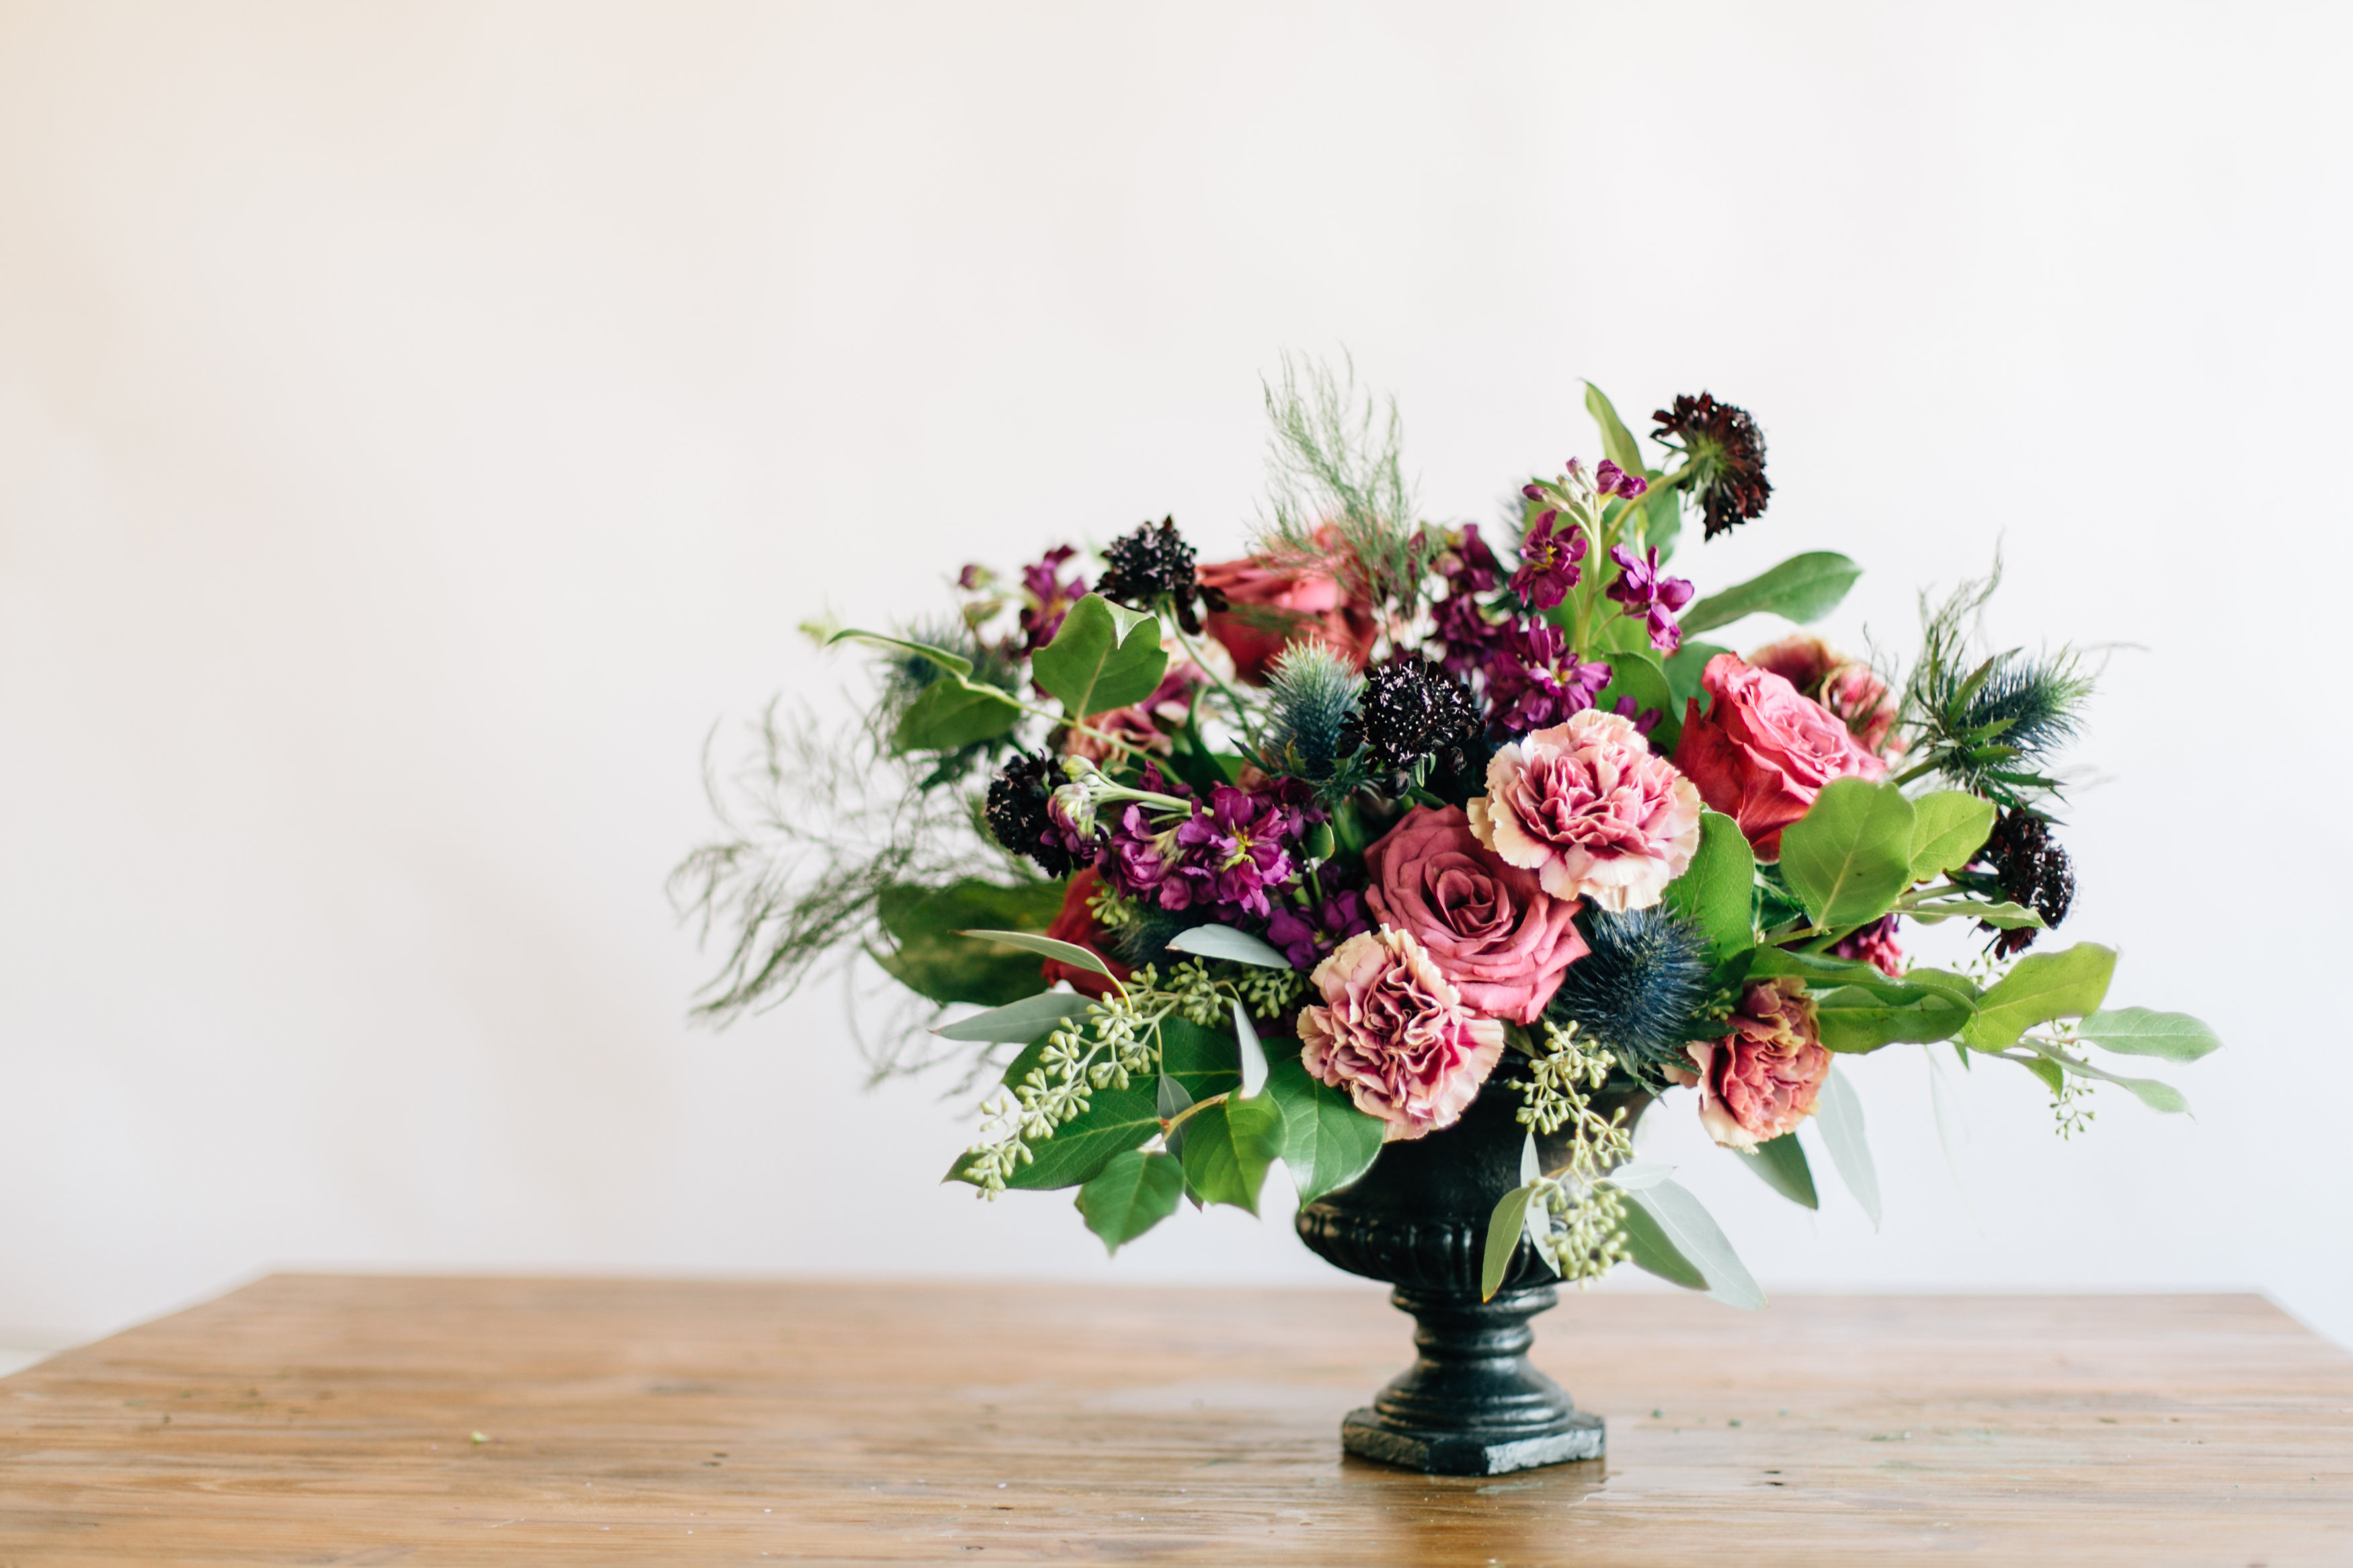 How To DIY A Floral Urn Centerpiece